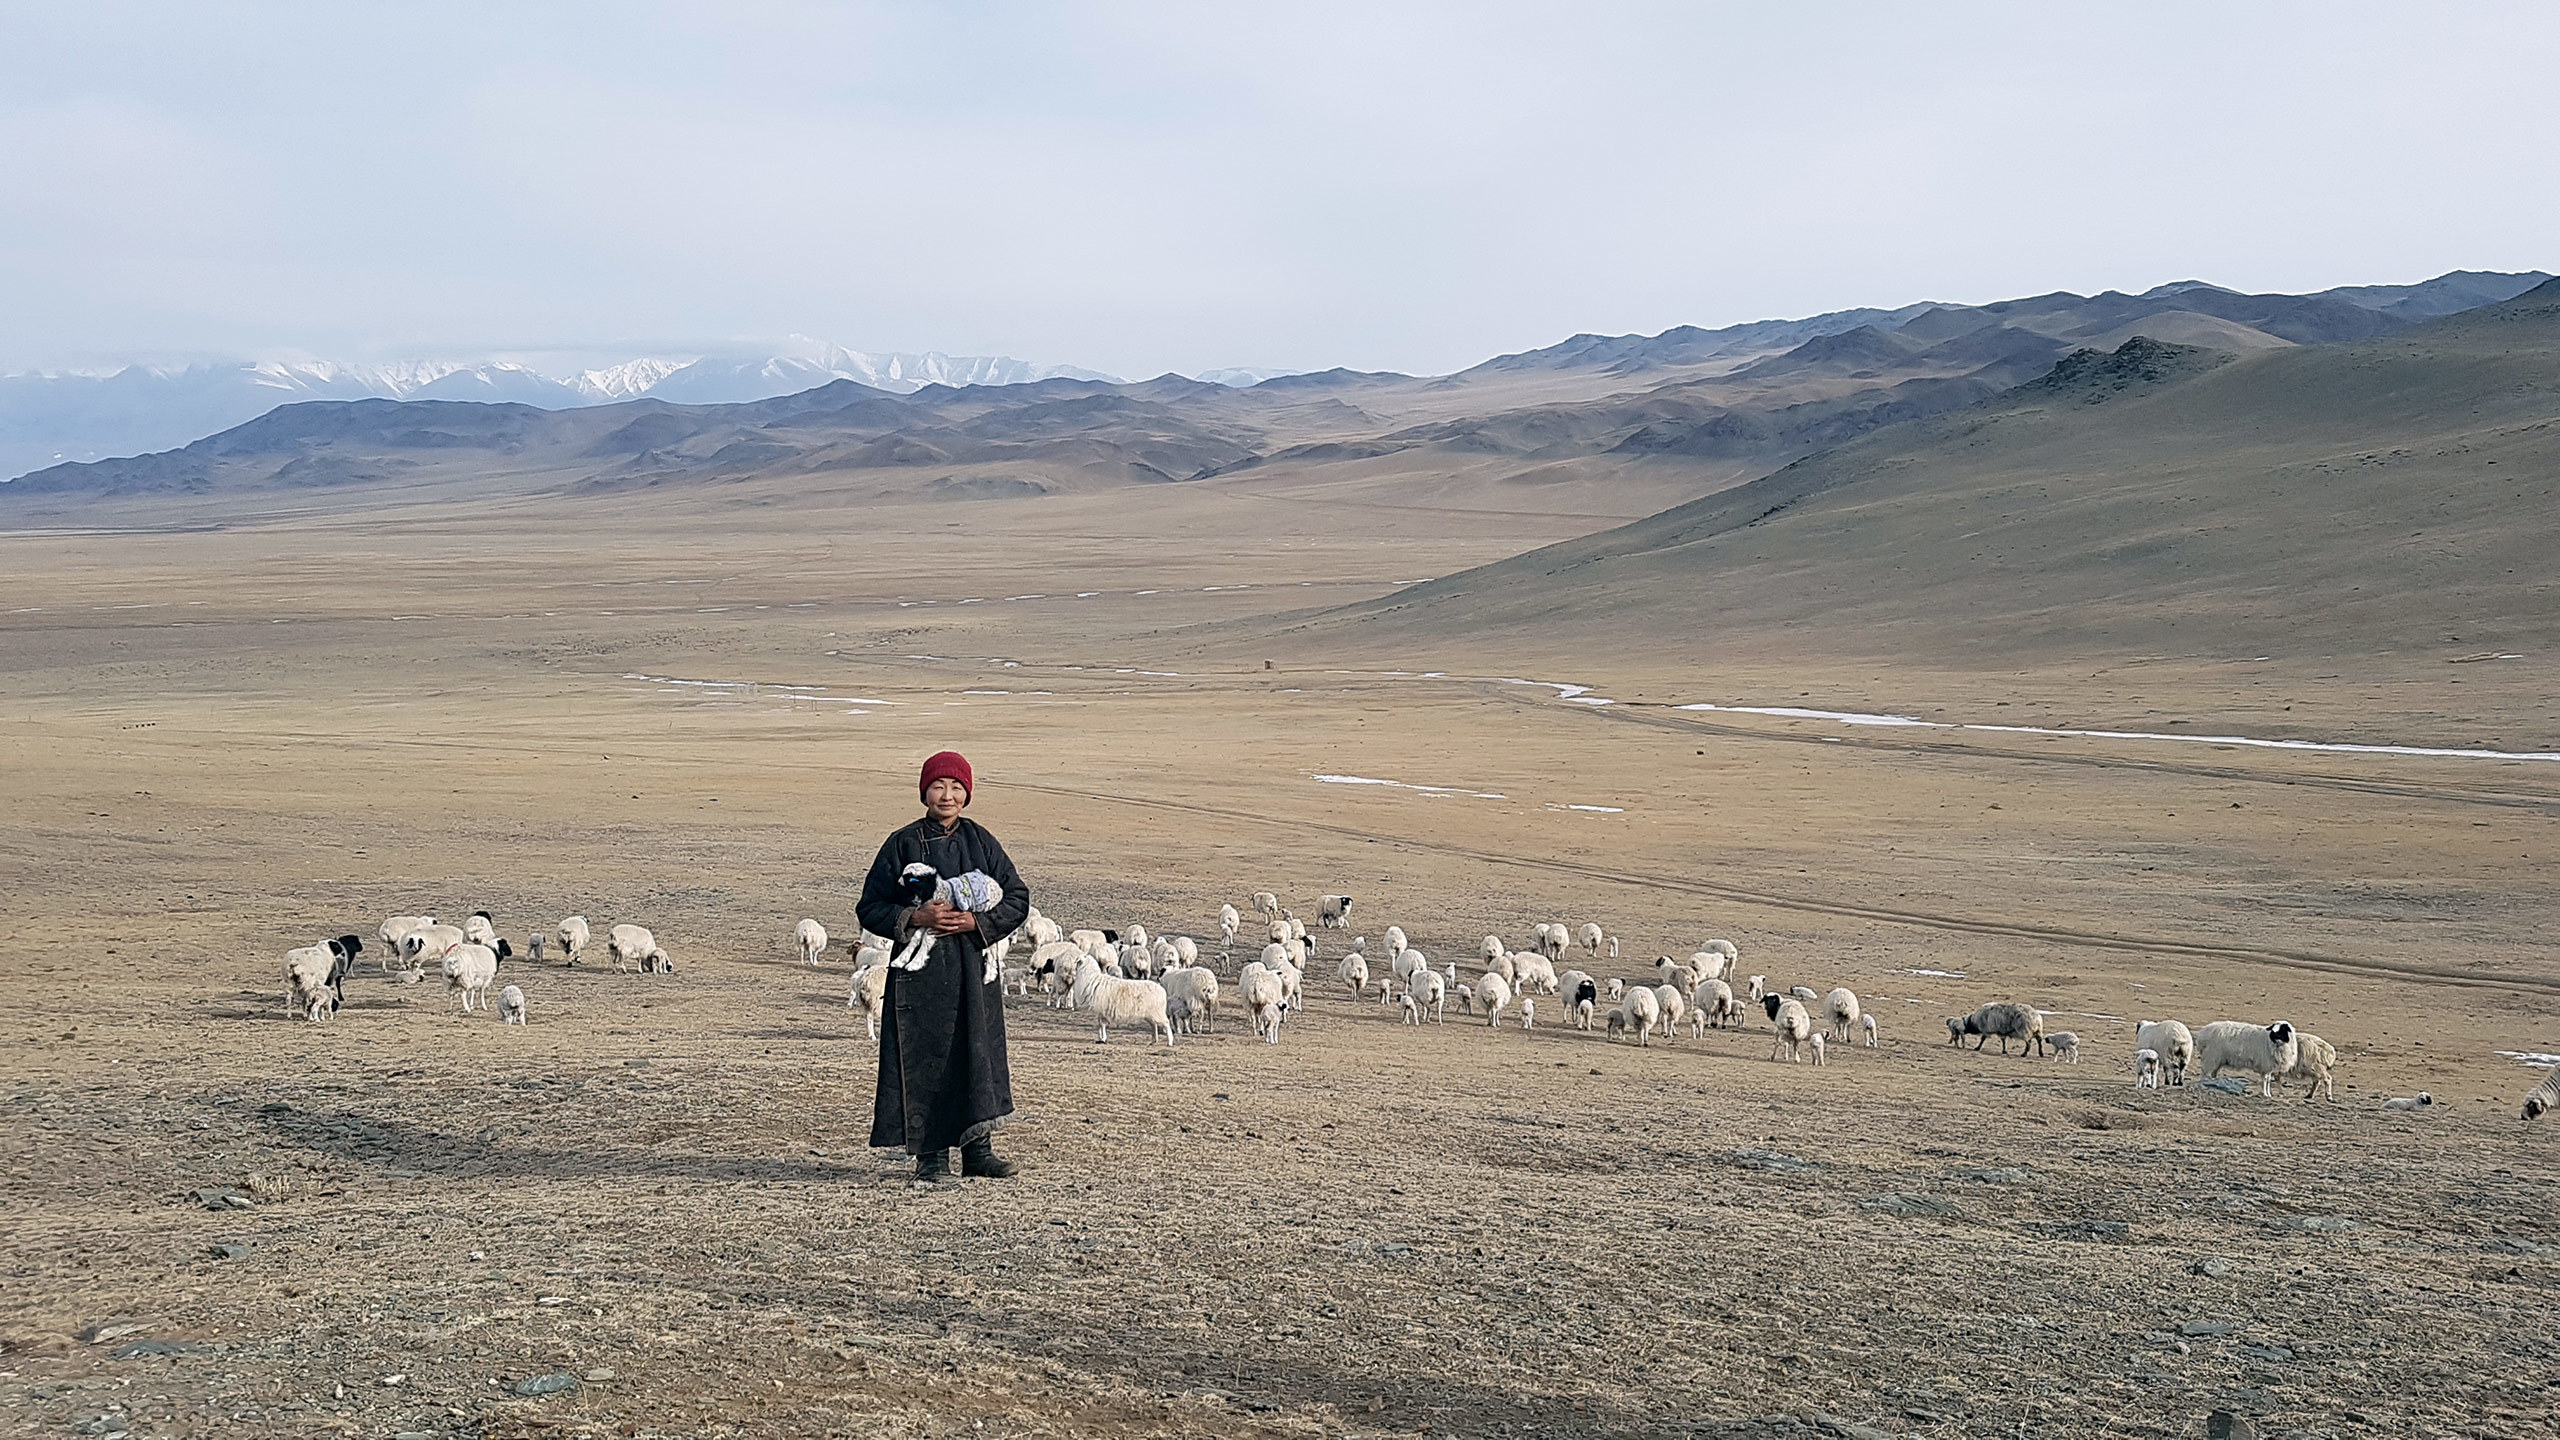 Mongolian spring - Resident with herd of goats